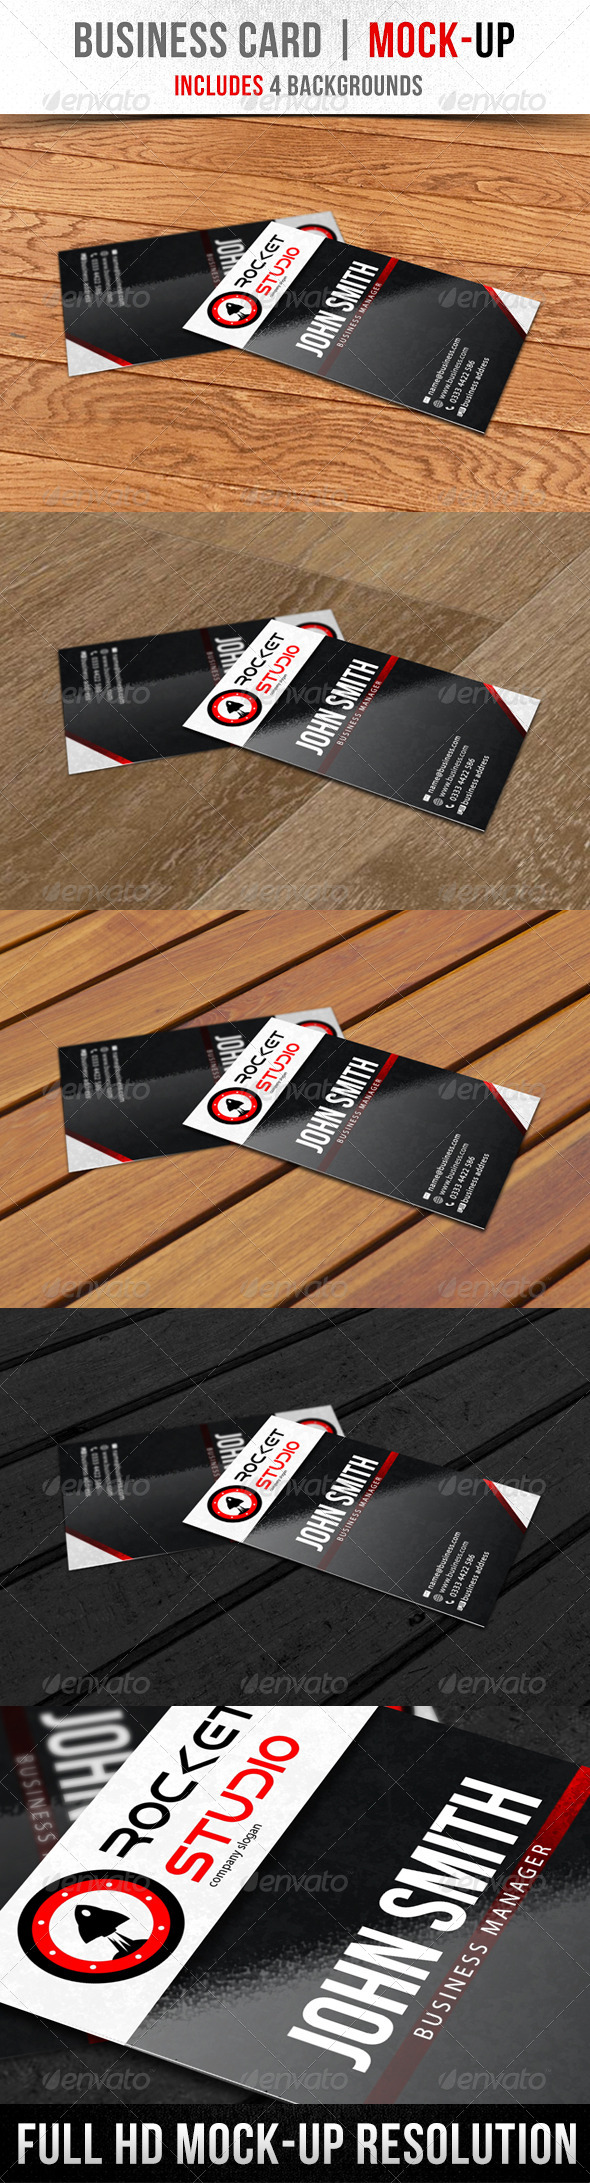 Business Card | Mock-Up - Business Cards Print